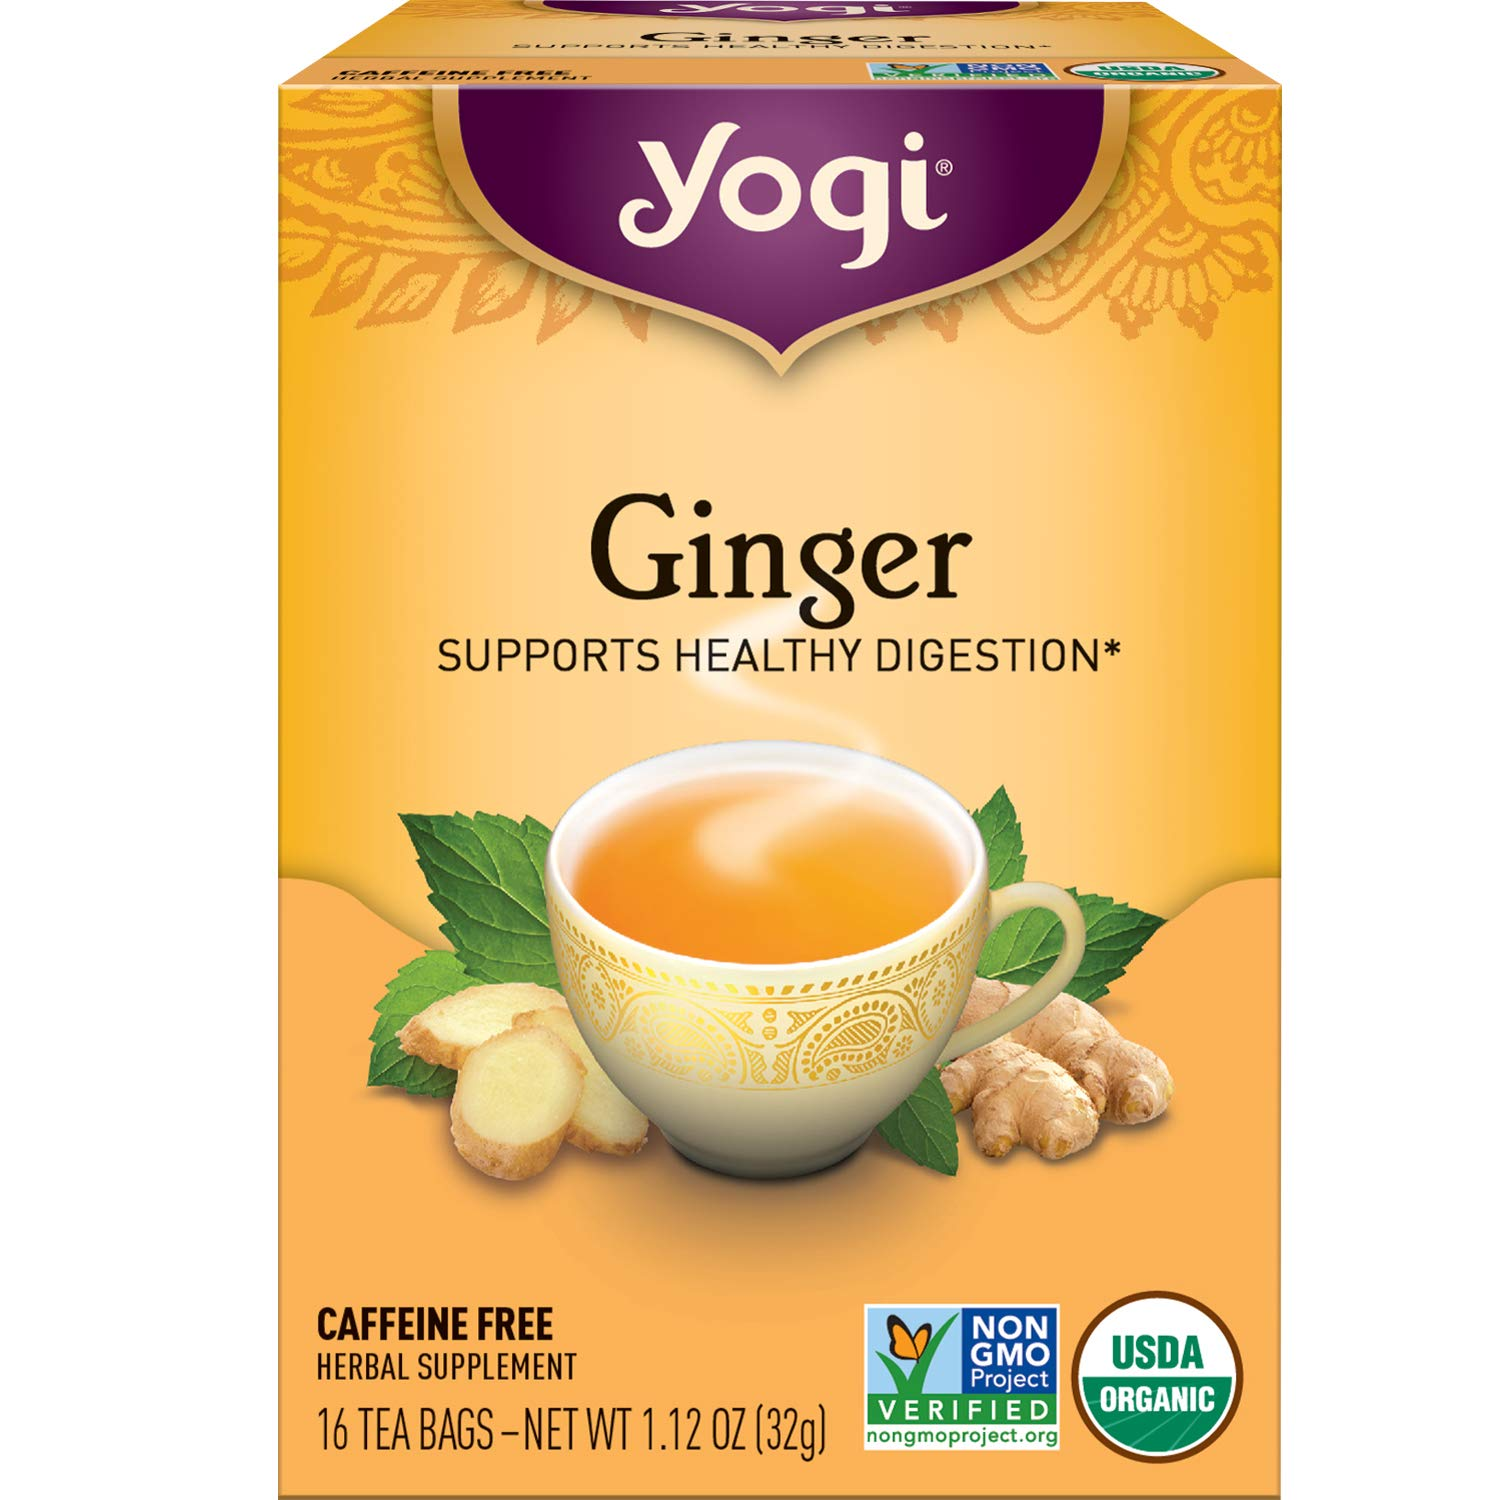 Yogi Tea - Ginger (6 Pack) - Supports Healthy Digestion - 96 Tea Bags Total